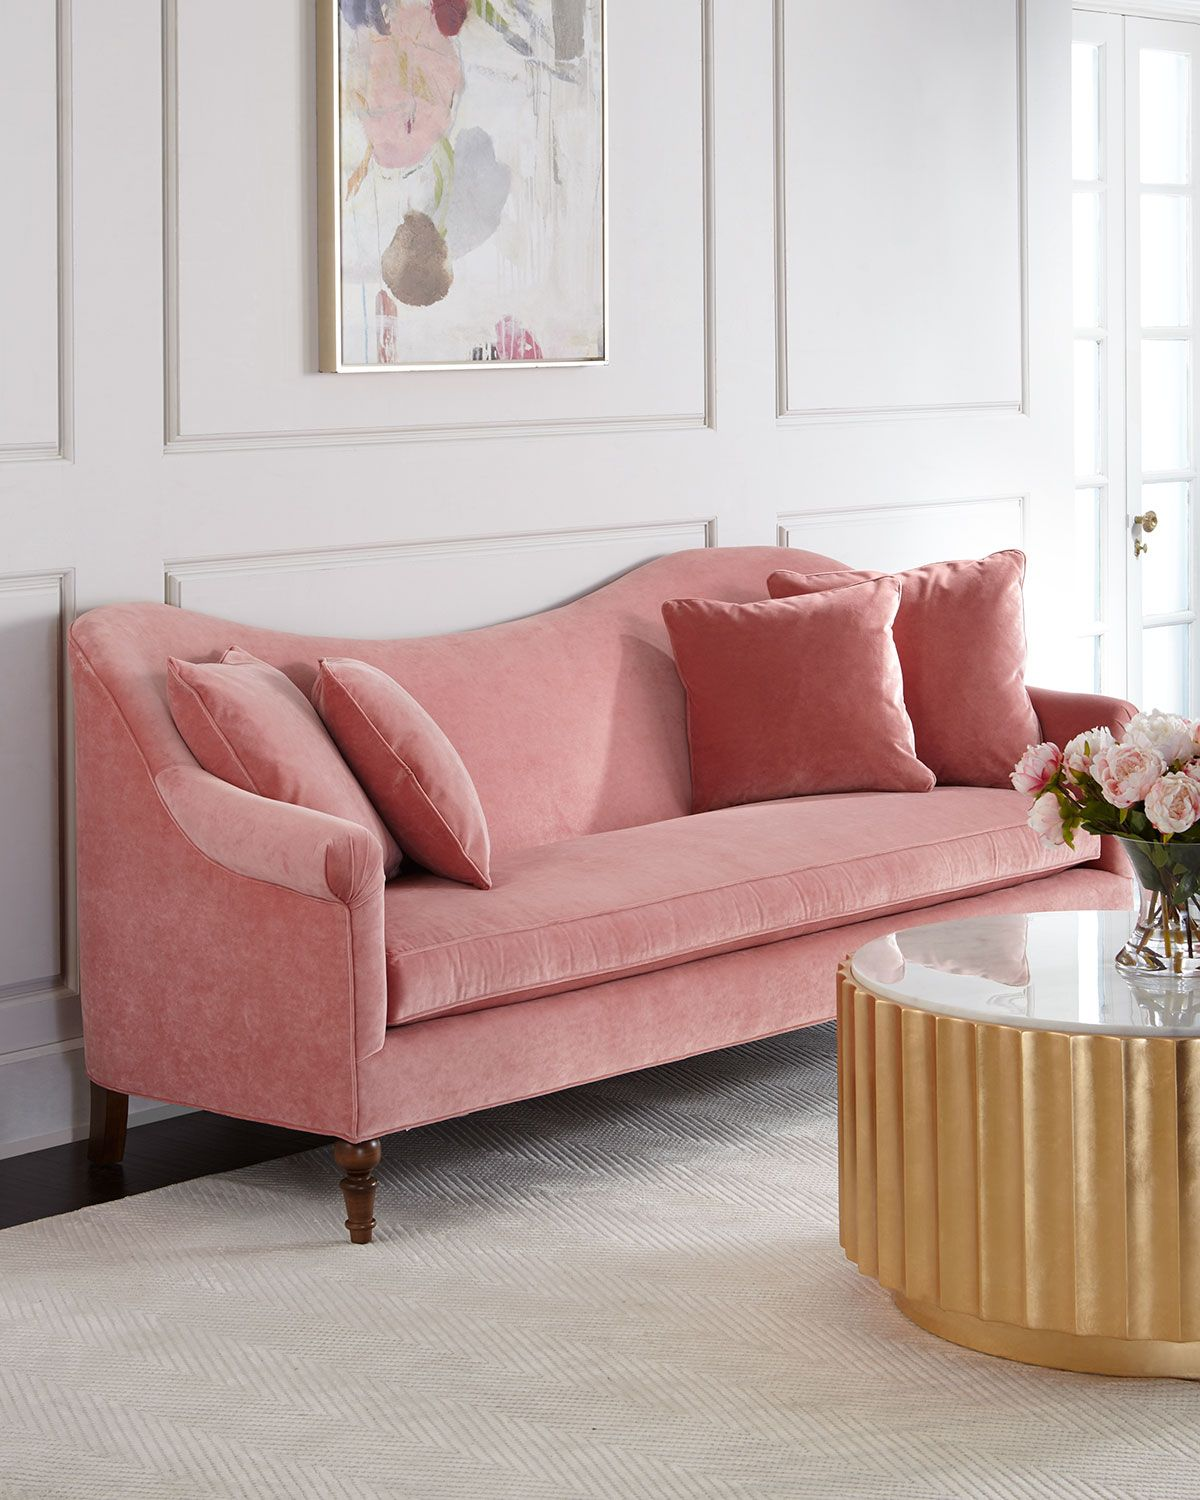 Ideas For Decorating Plush Pink Sofa Living Room: Pink Sofa, Living Room Inspiration